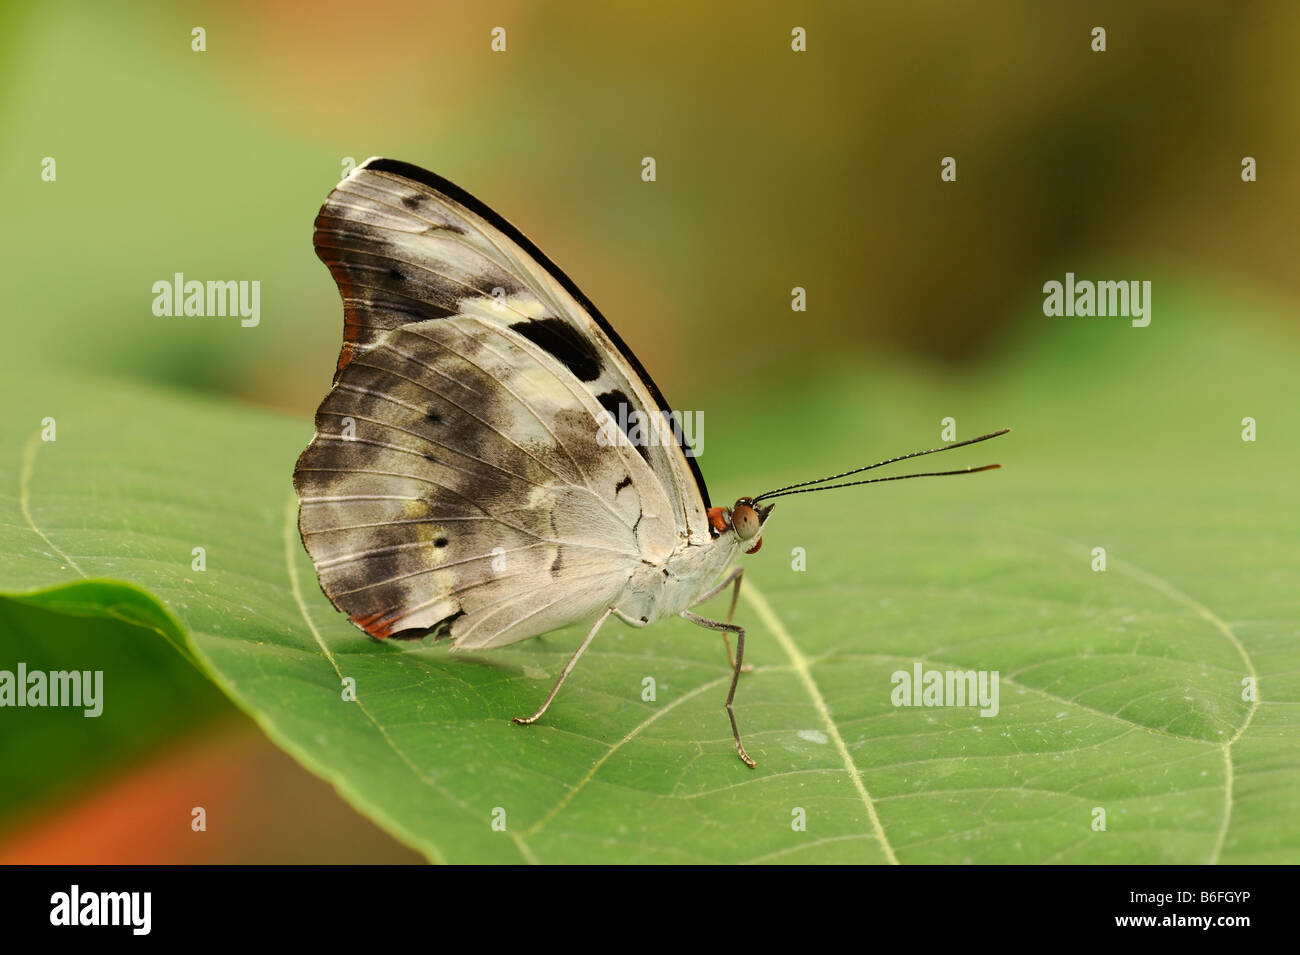 Tropical Butterfly on a leaf, Ecuador, South America - Stock Image